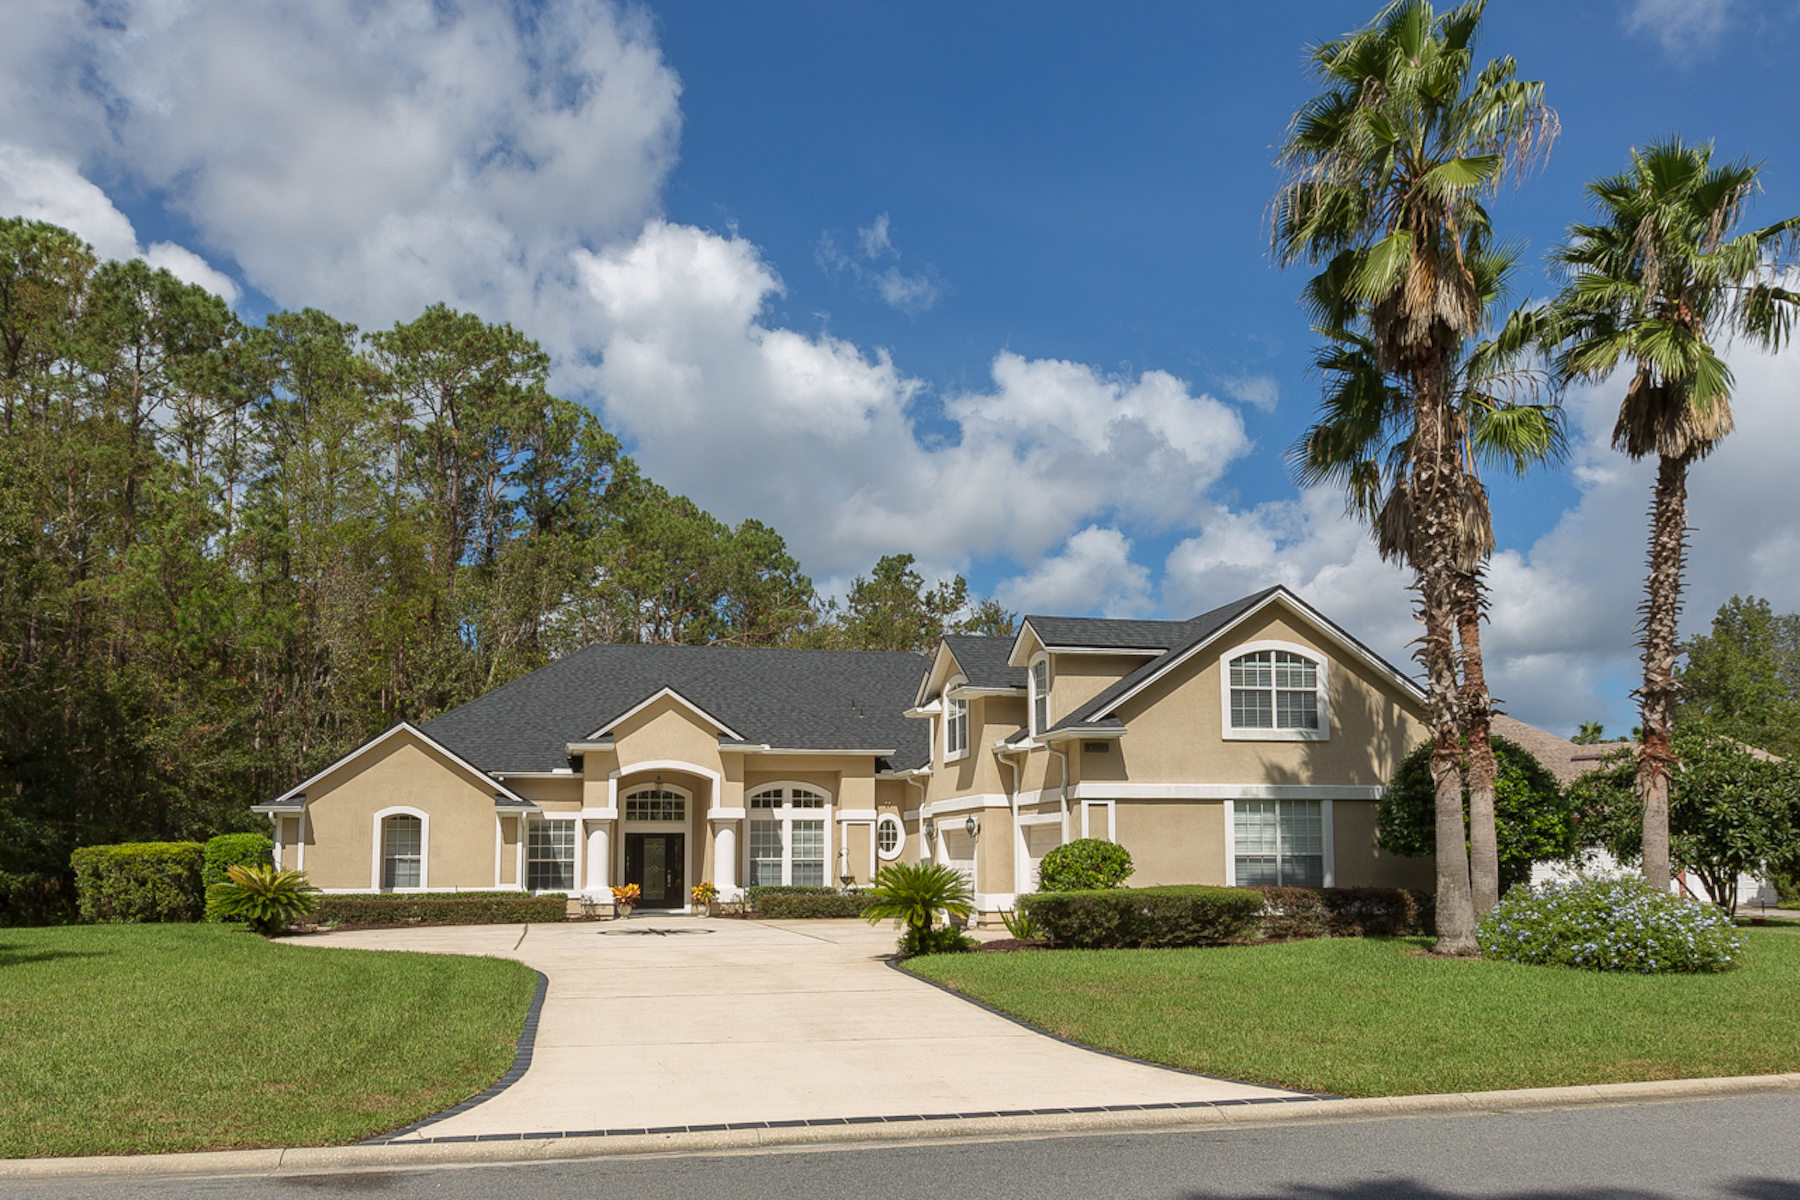 Single Family Home for Sale at Spectacular Deercreek CC Property 10330 Cypress Lakes Drive Jacksonville, Florida 32256 United States